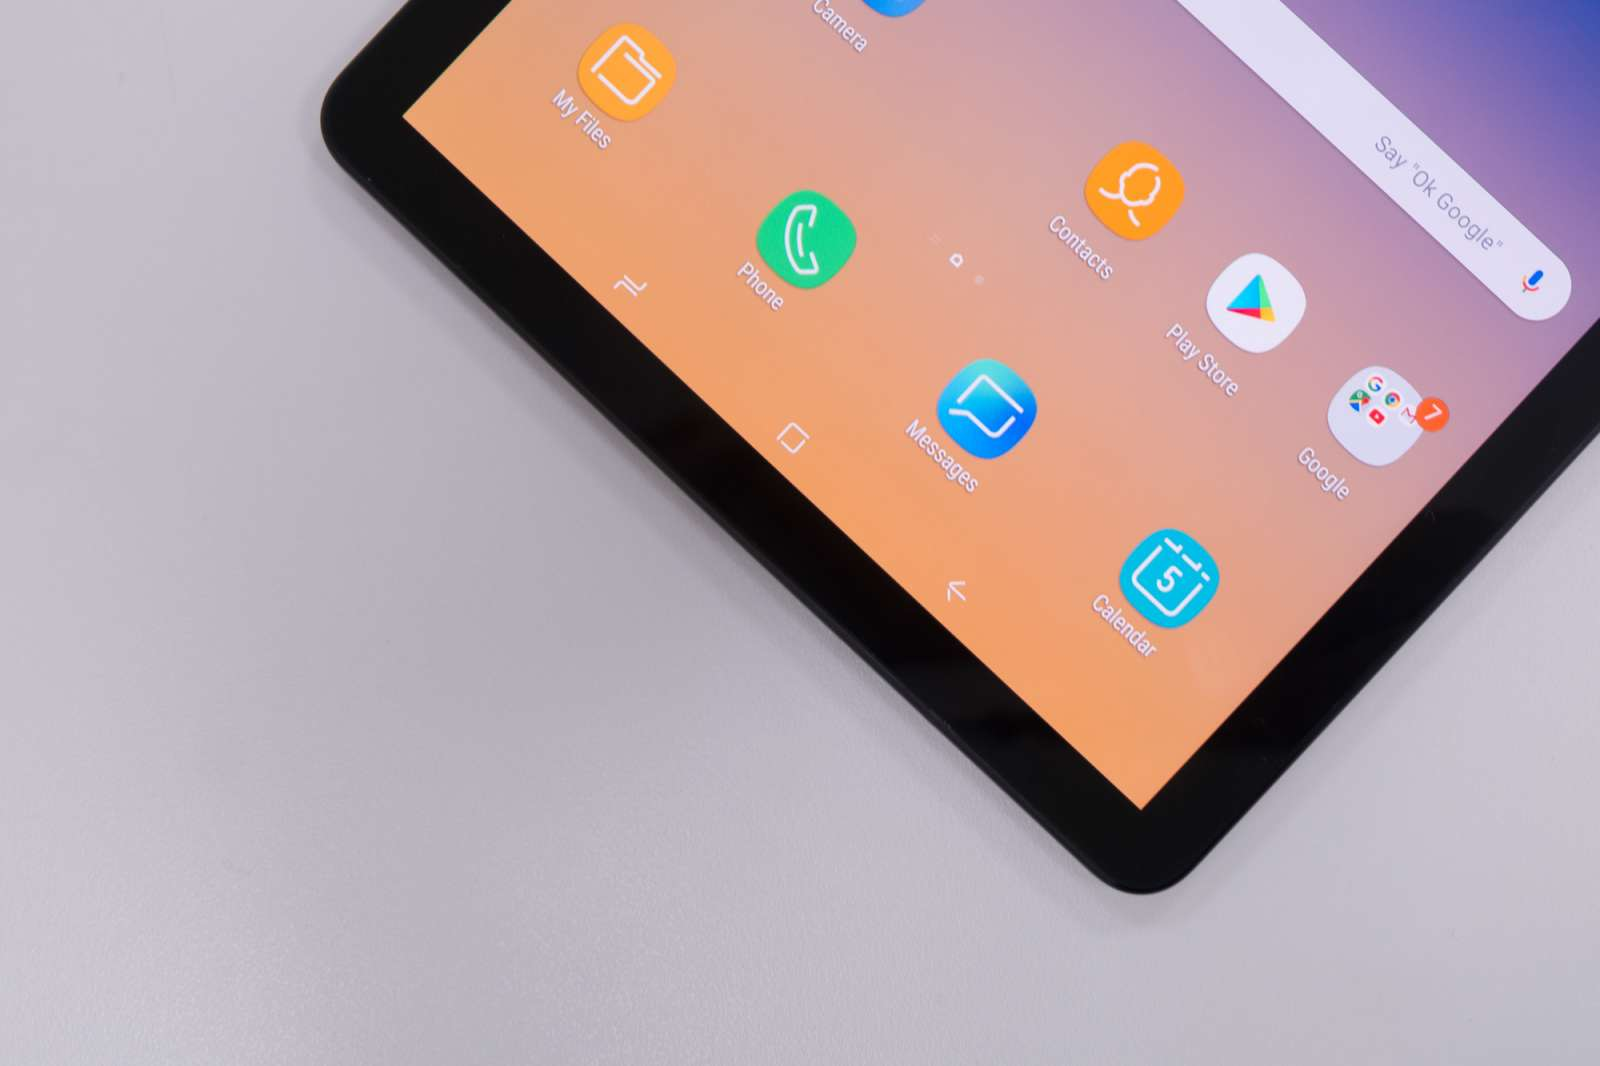 Bottom - Samsung Galaxy Tab S4 (Philippines)